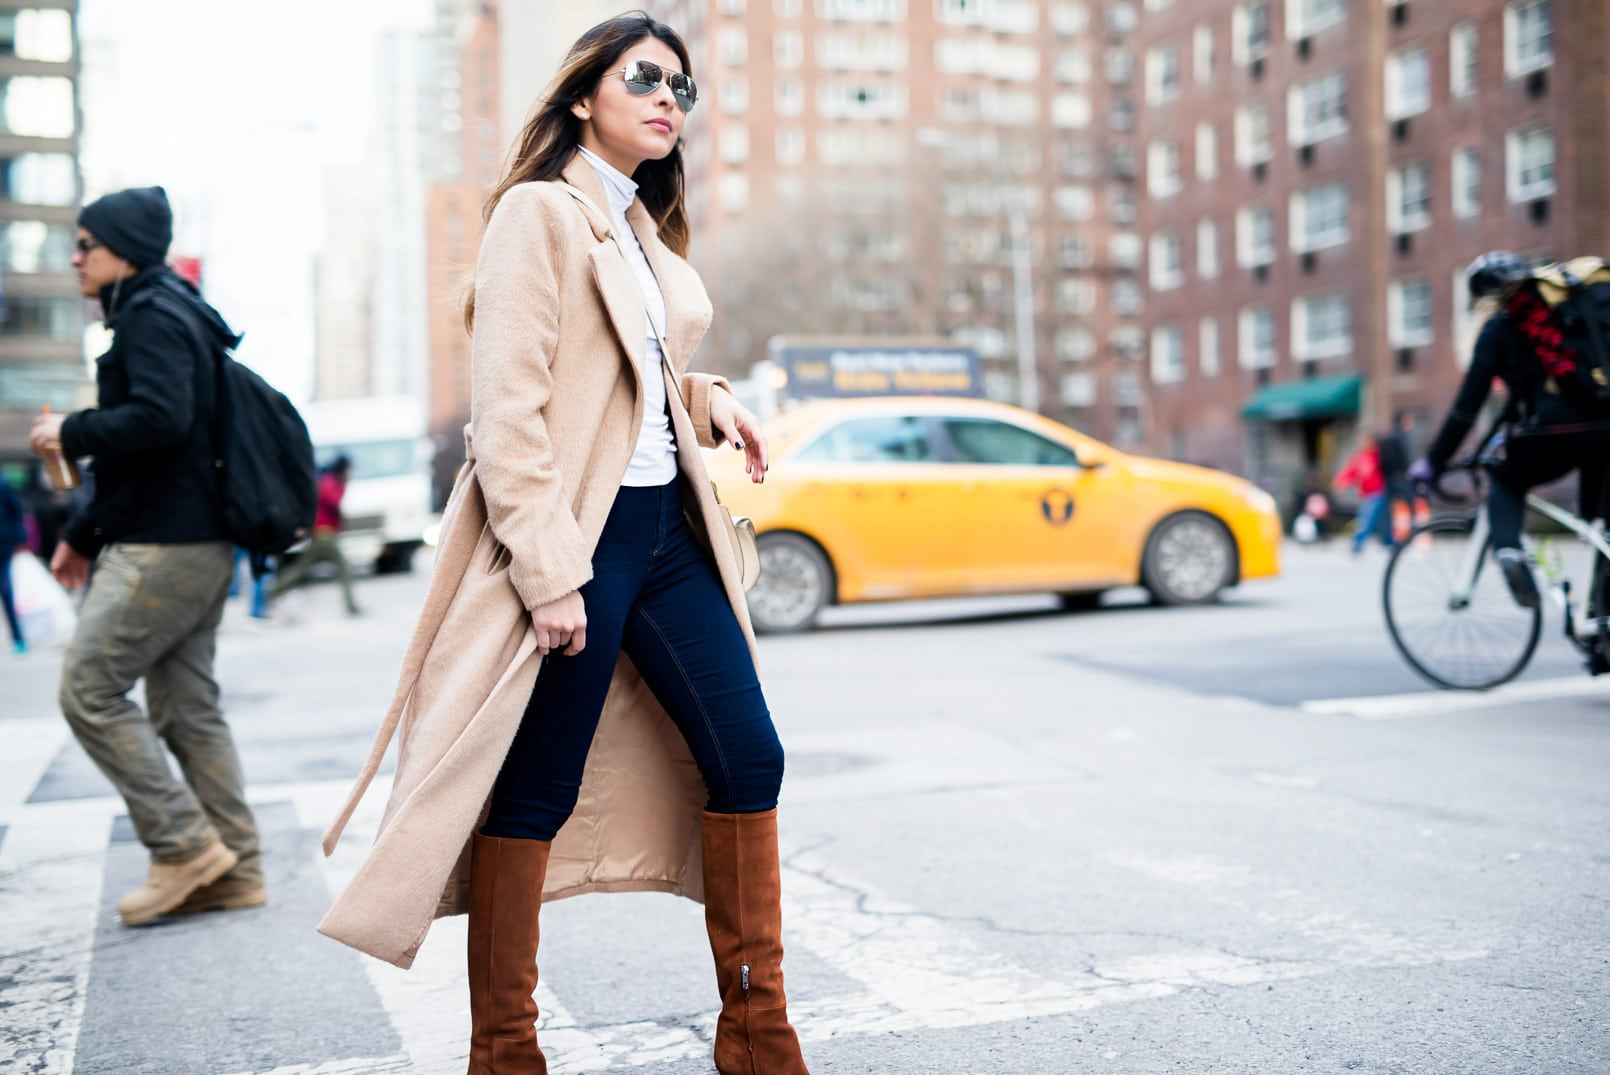 Pam Hetlinger wearing a missguided camel coat, chloe georgia bag, topshop high waisted pants, barbara bui knee-high brown boots, ray ban mirrored aviators, and asos turtleneck. new york city, fashion week.